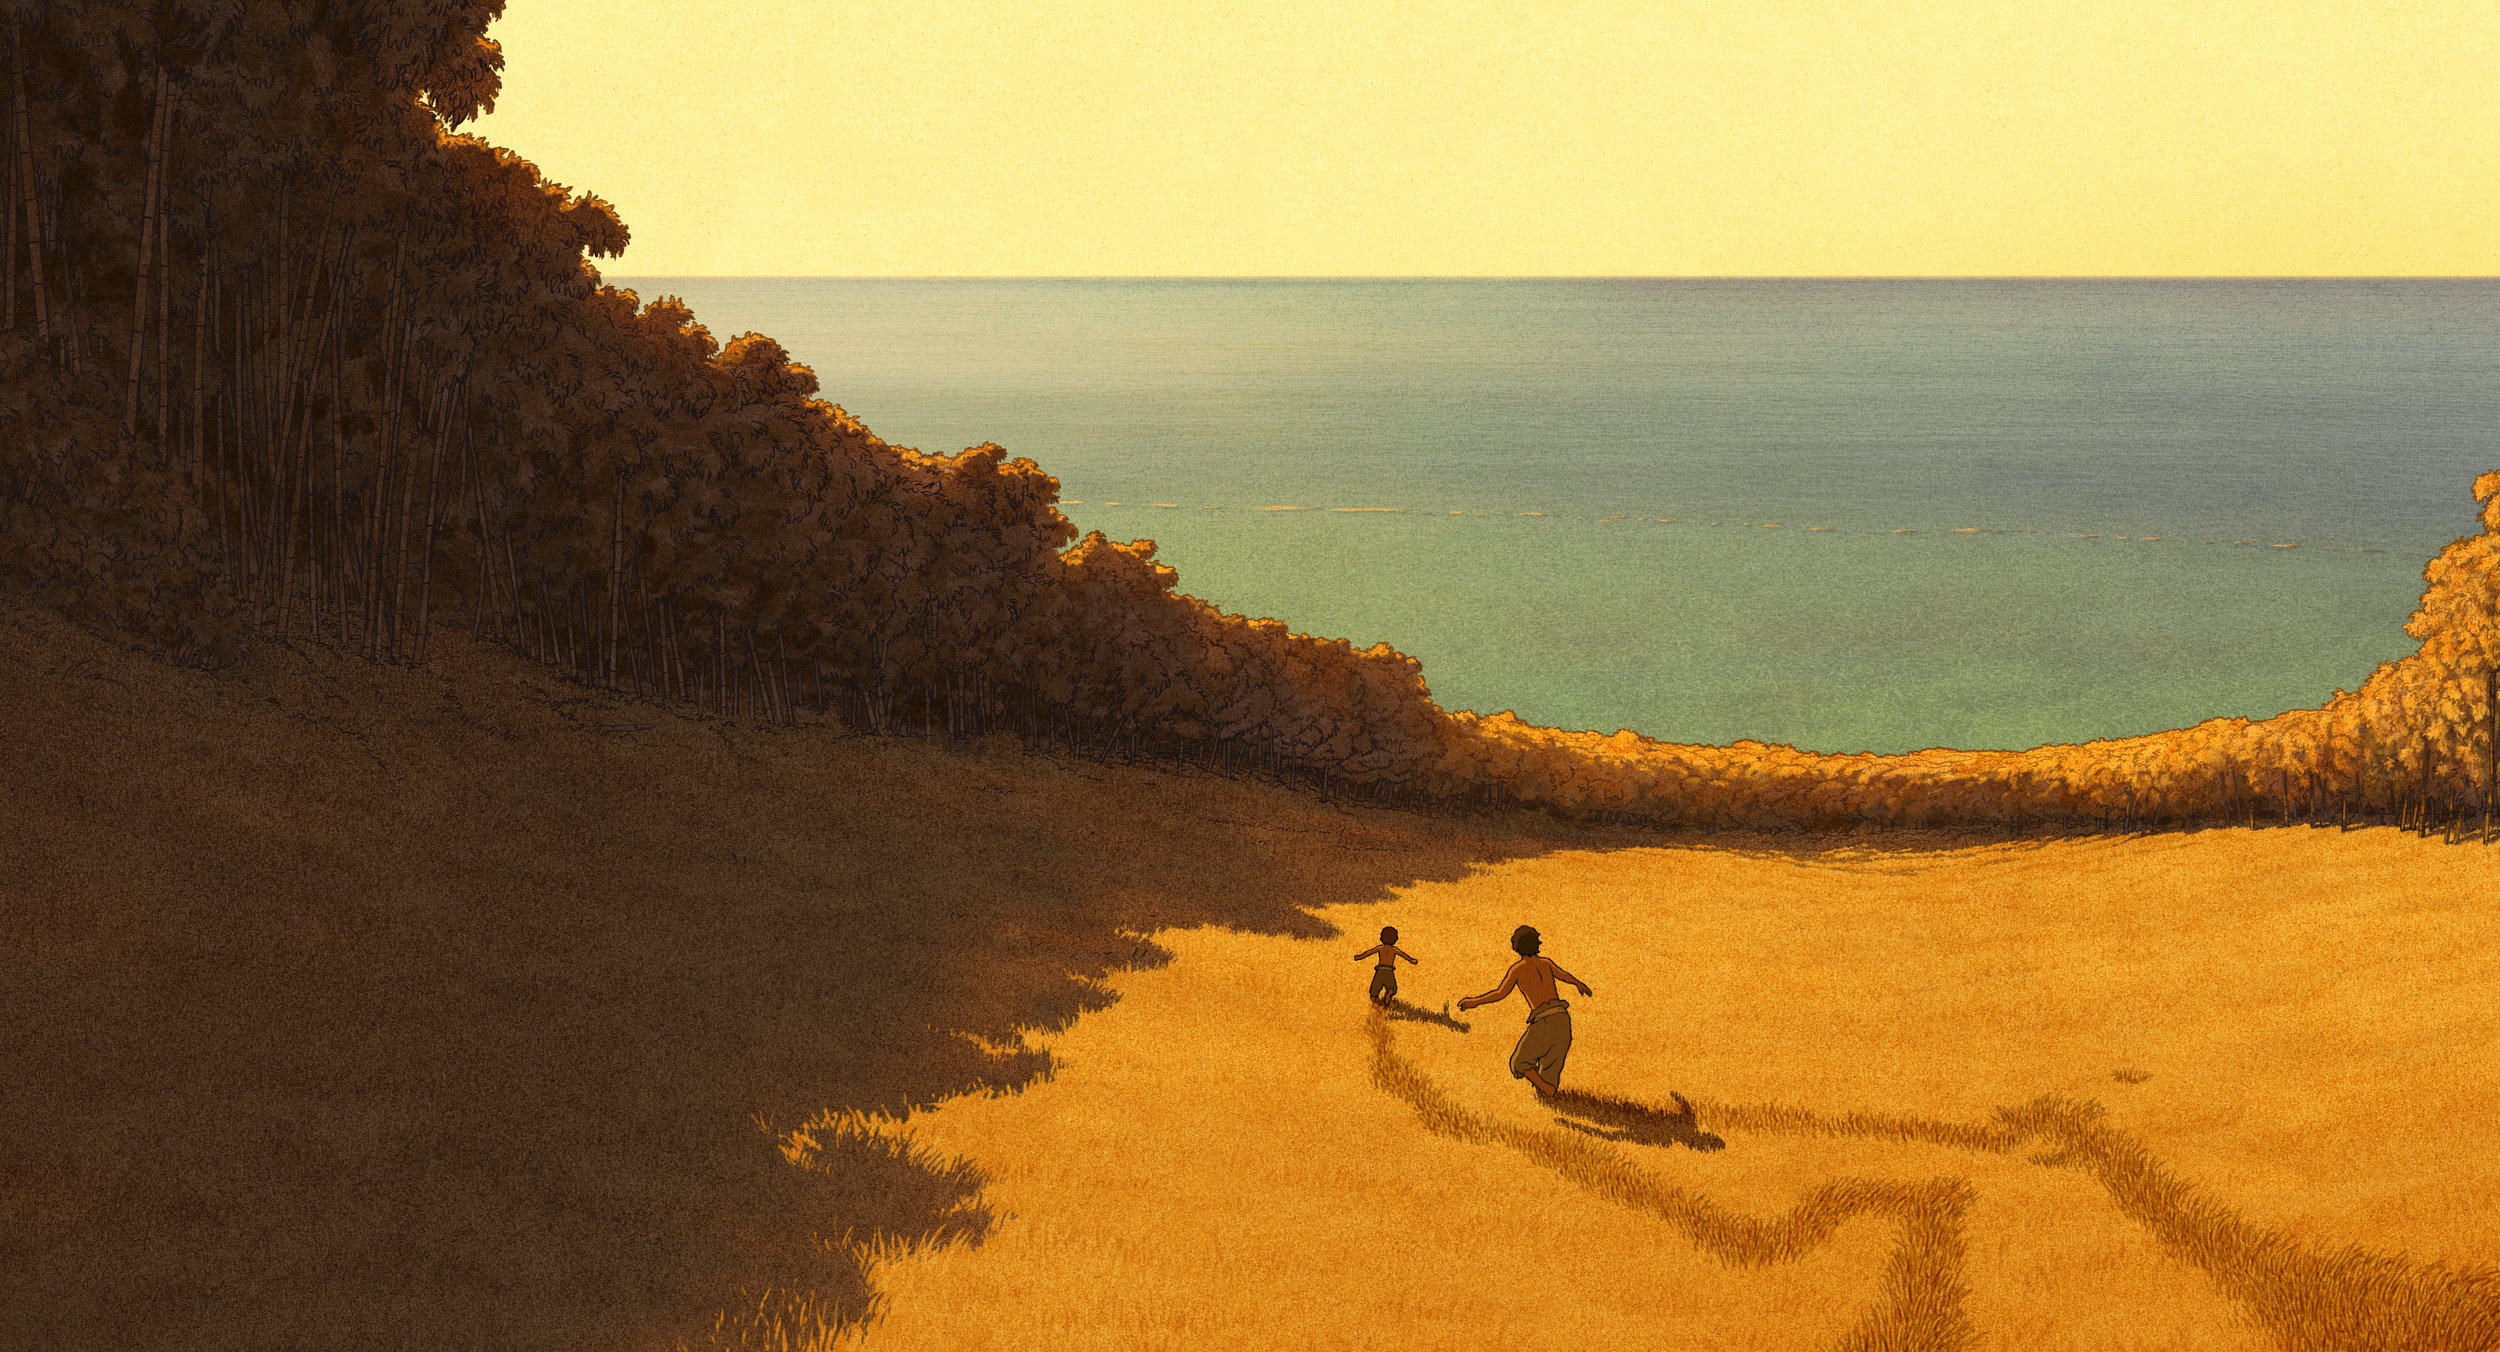 The Red Turtle 2016